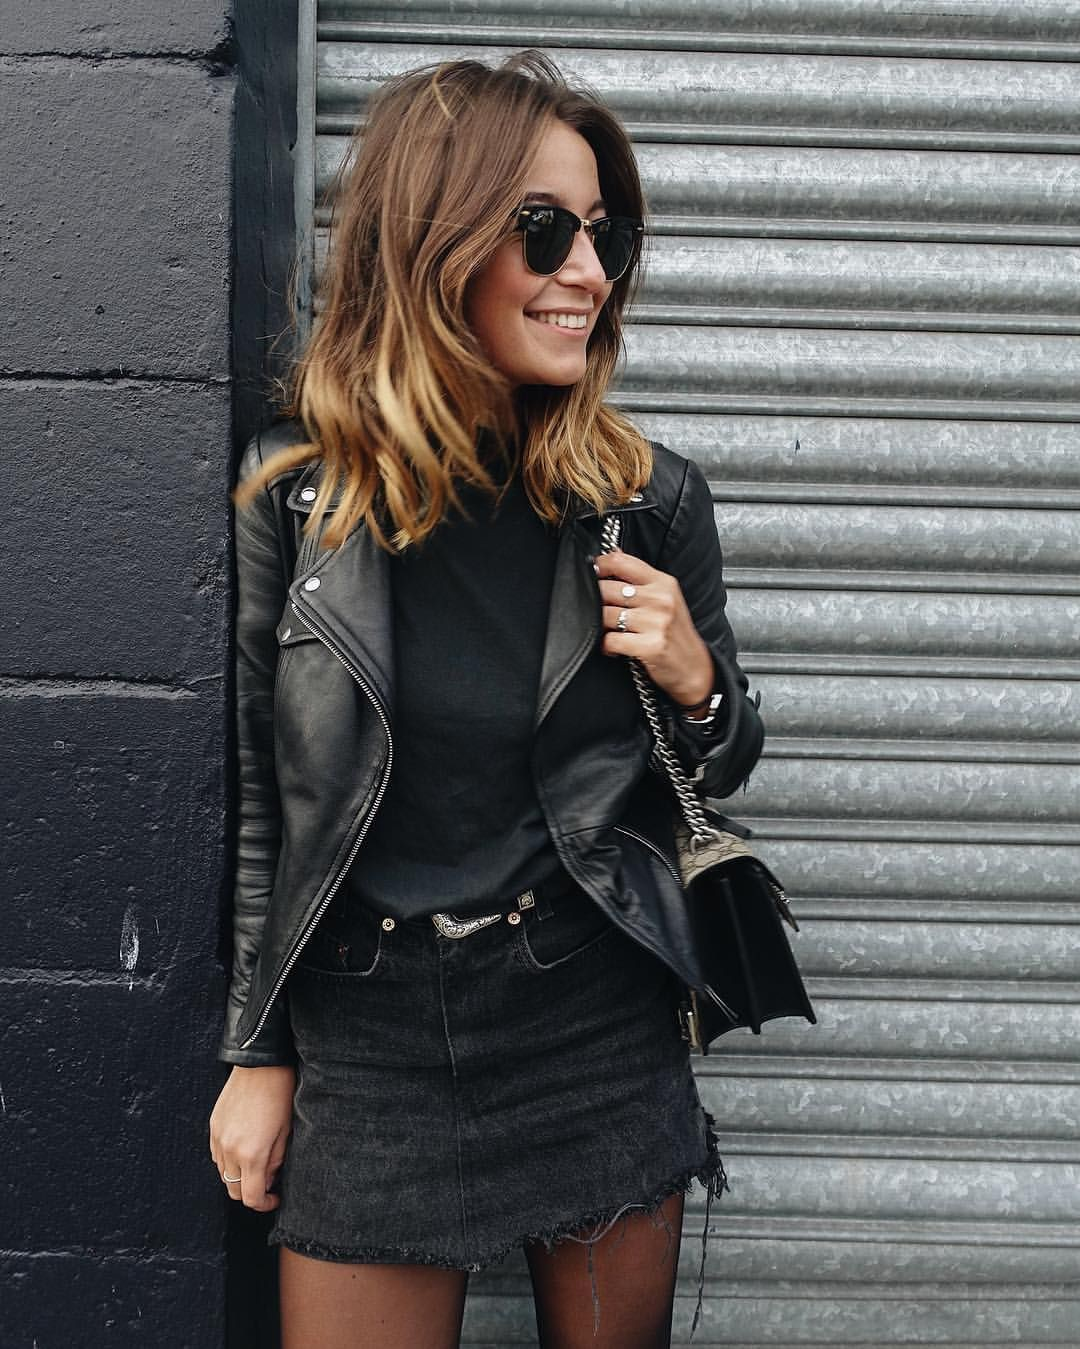 Black denim skirt outfit, leather jacket, street fashion, pencil skirt, casual wear, denim skirt